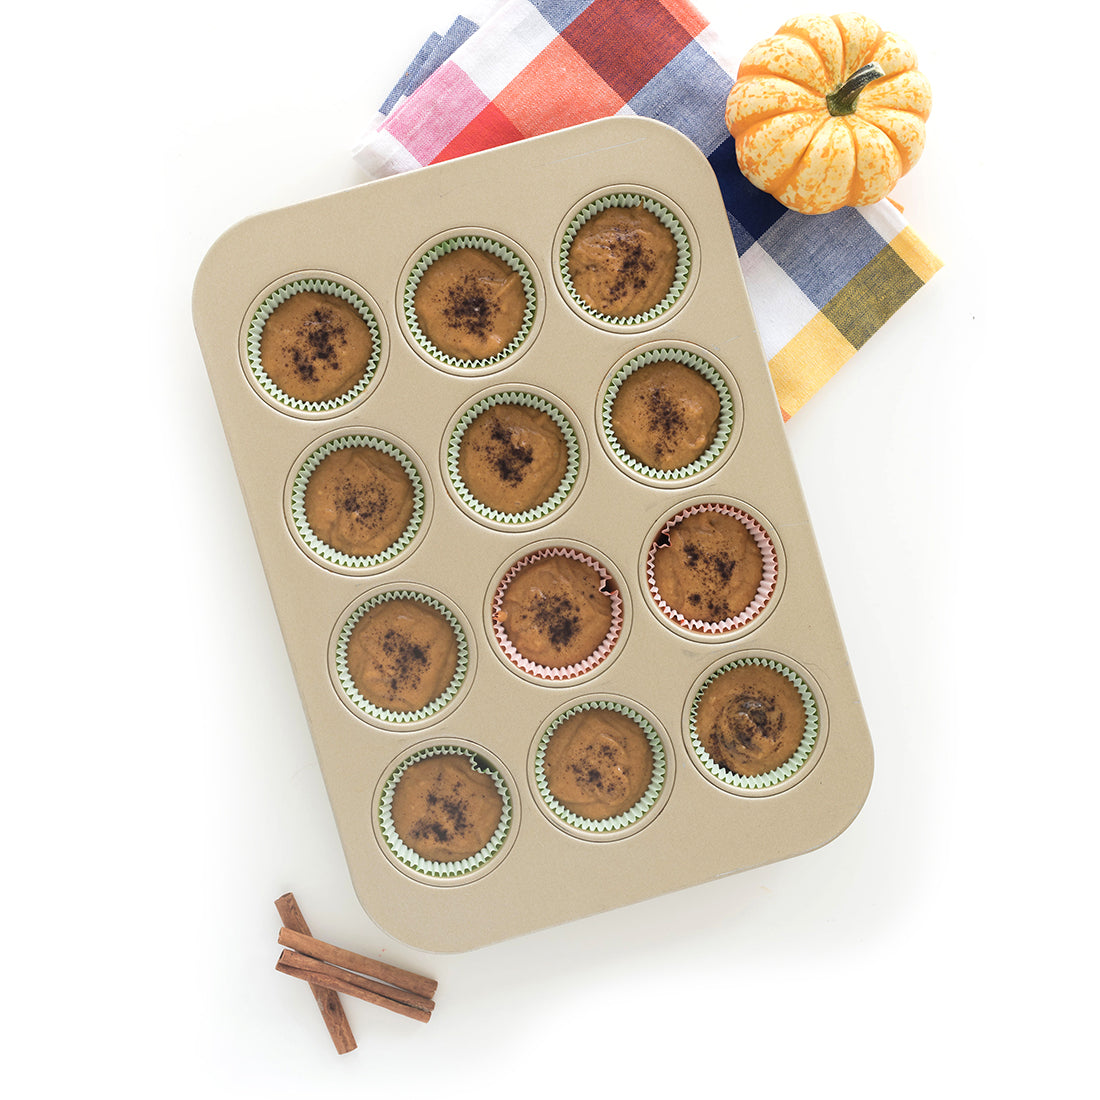 Image from above of Miss Jones Baking Co Pumpkin Spice Latte (PSL) Cupcake batter in a cupcake baking tin